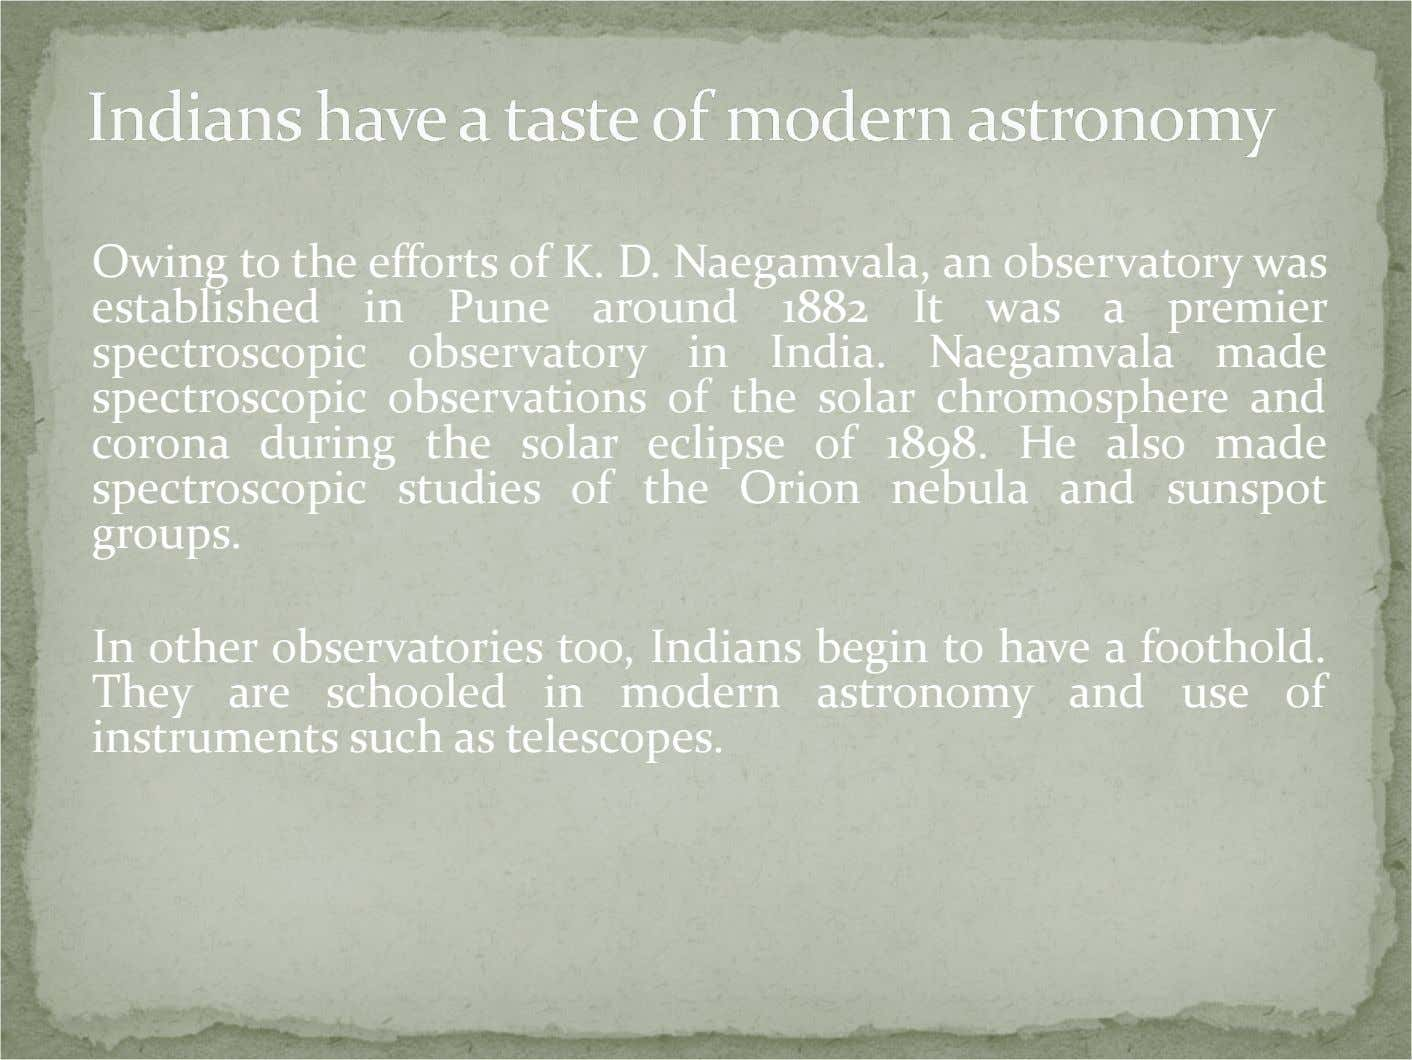 Owing to the efforts of K. D. Naegamvala, an observatory was established in Pune around